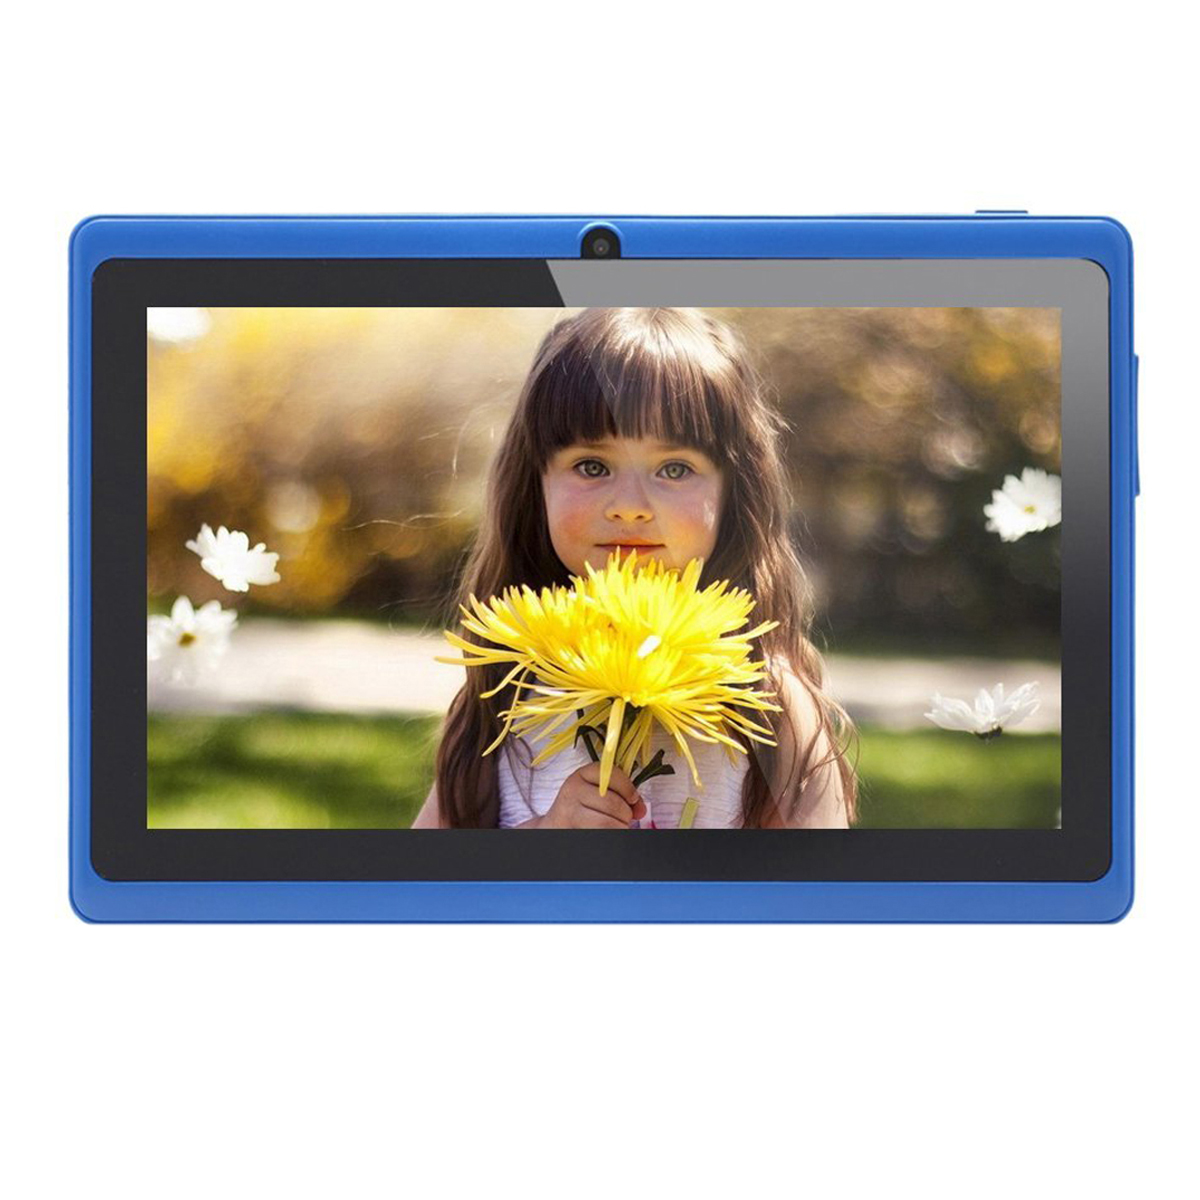 7 inch Android Google Tablet PC 4.2.2 8GB 512MB DDR3 Quad Core Camera Capacitive Touch Screen 1.5GHz WiFi